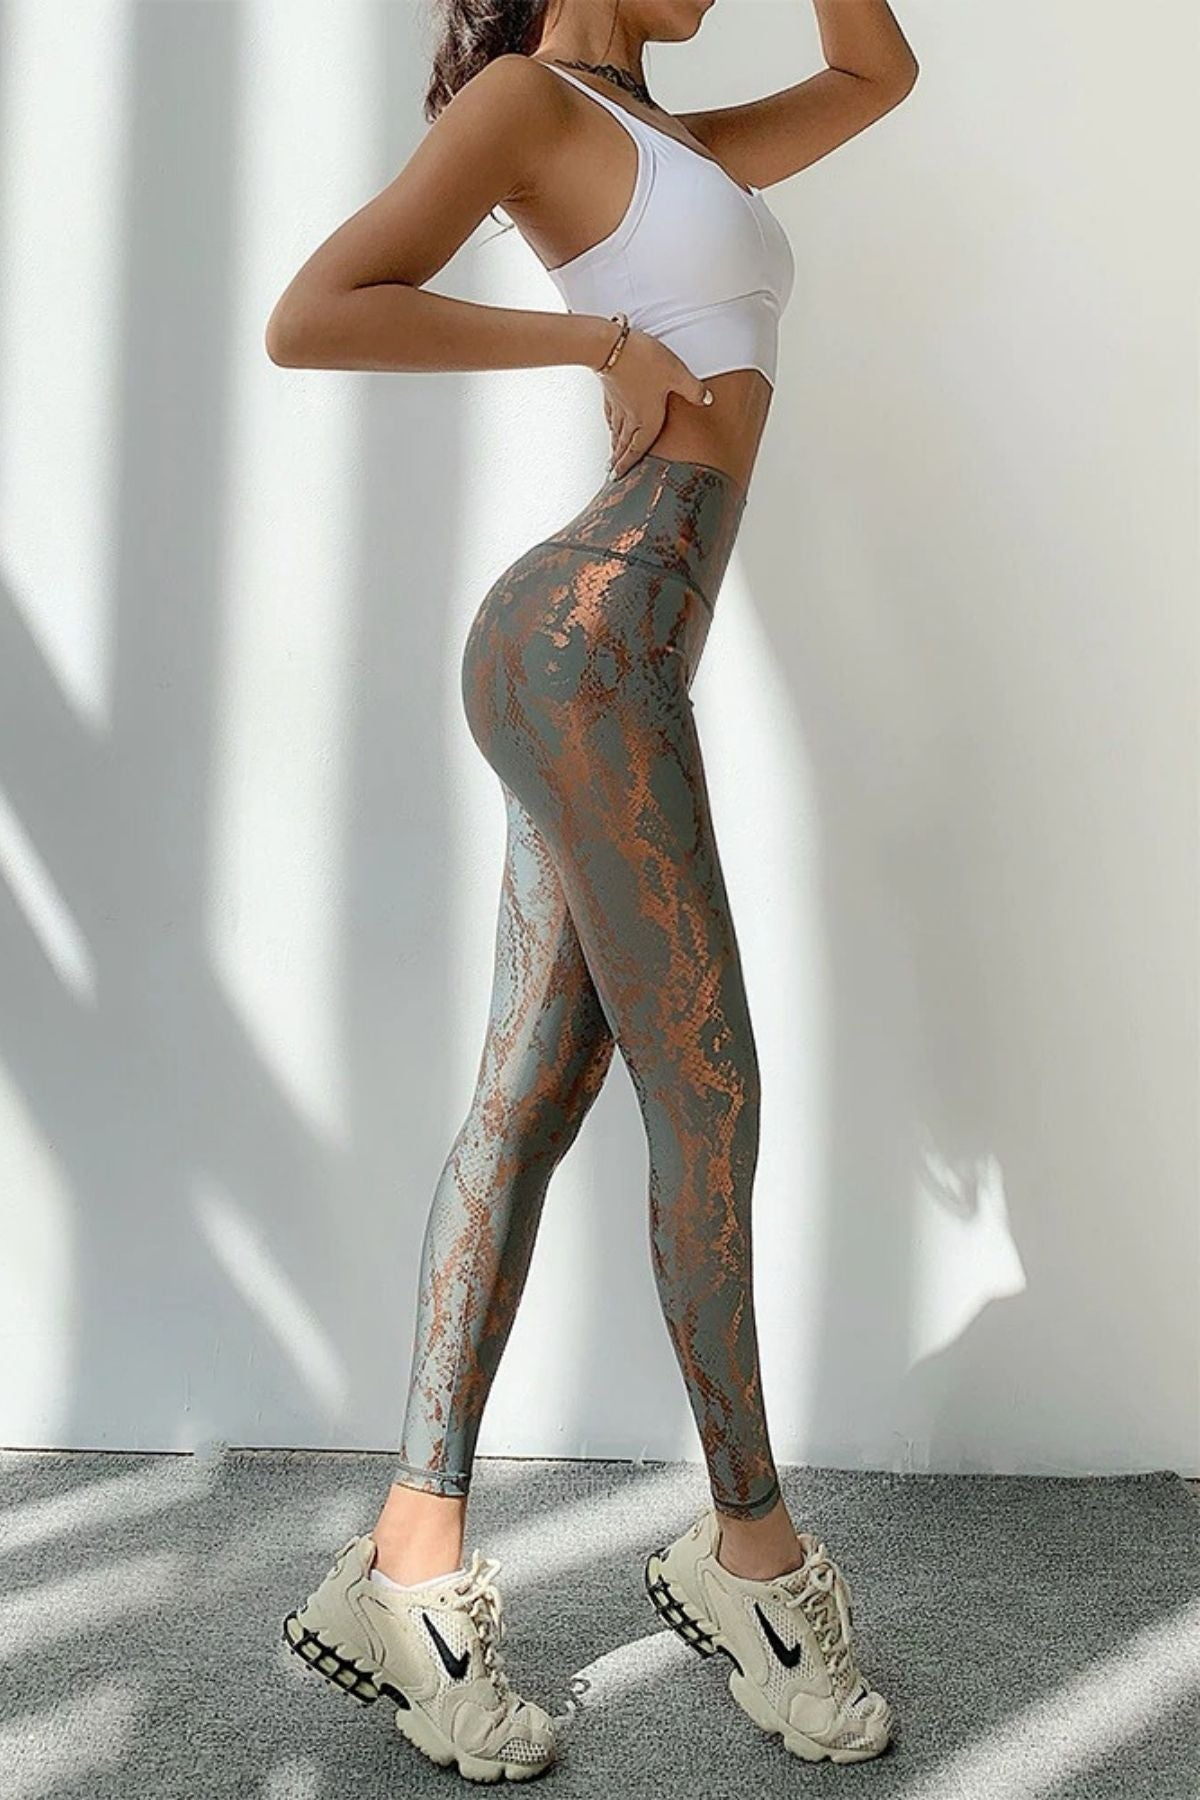 Women's Sexy Tight Grey Snakeskin Print Legging With High Waisted Fit And Ruched Shiny Color